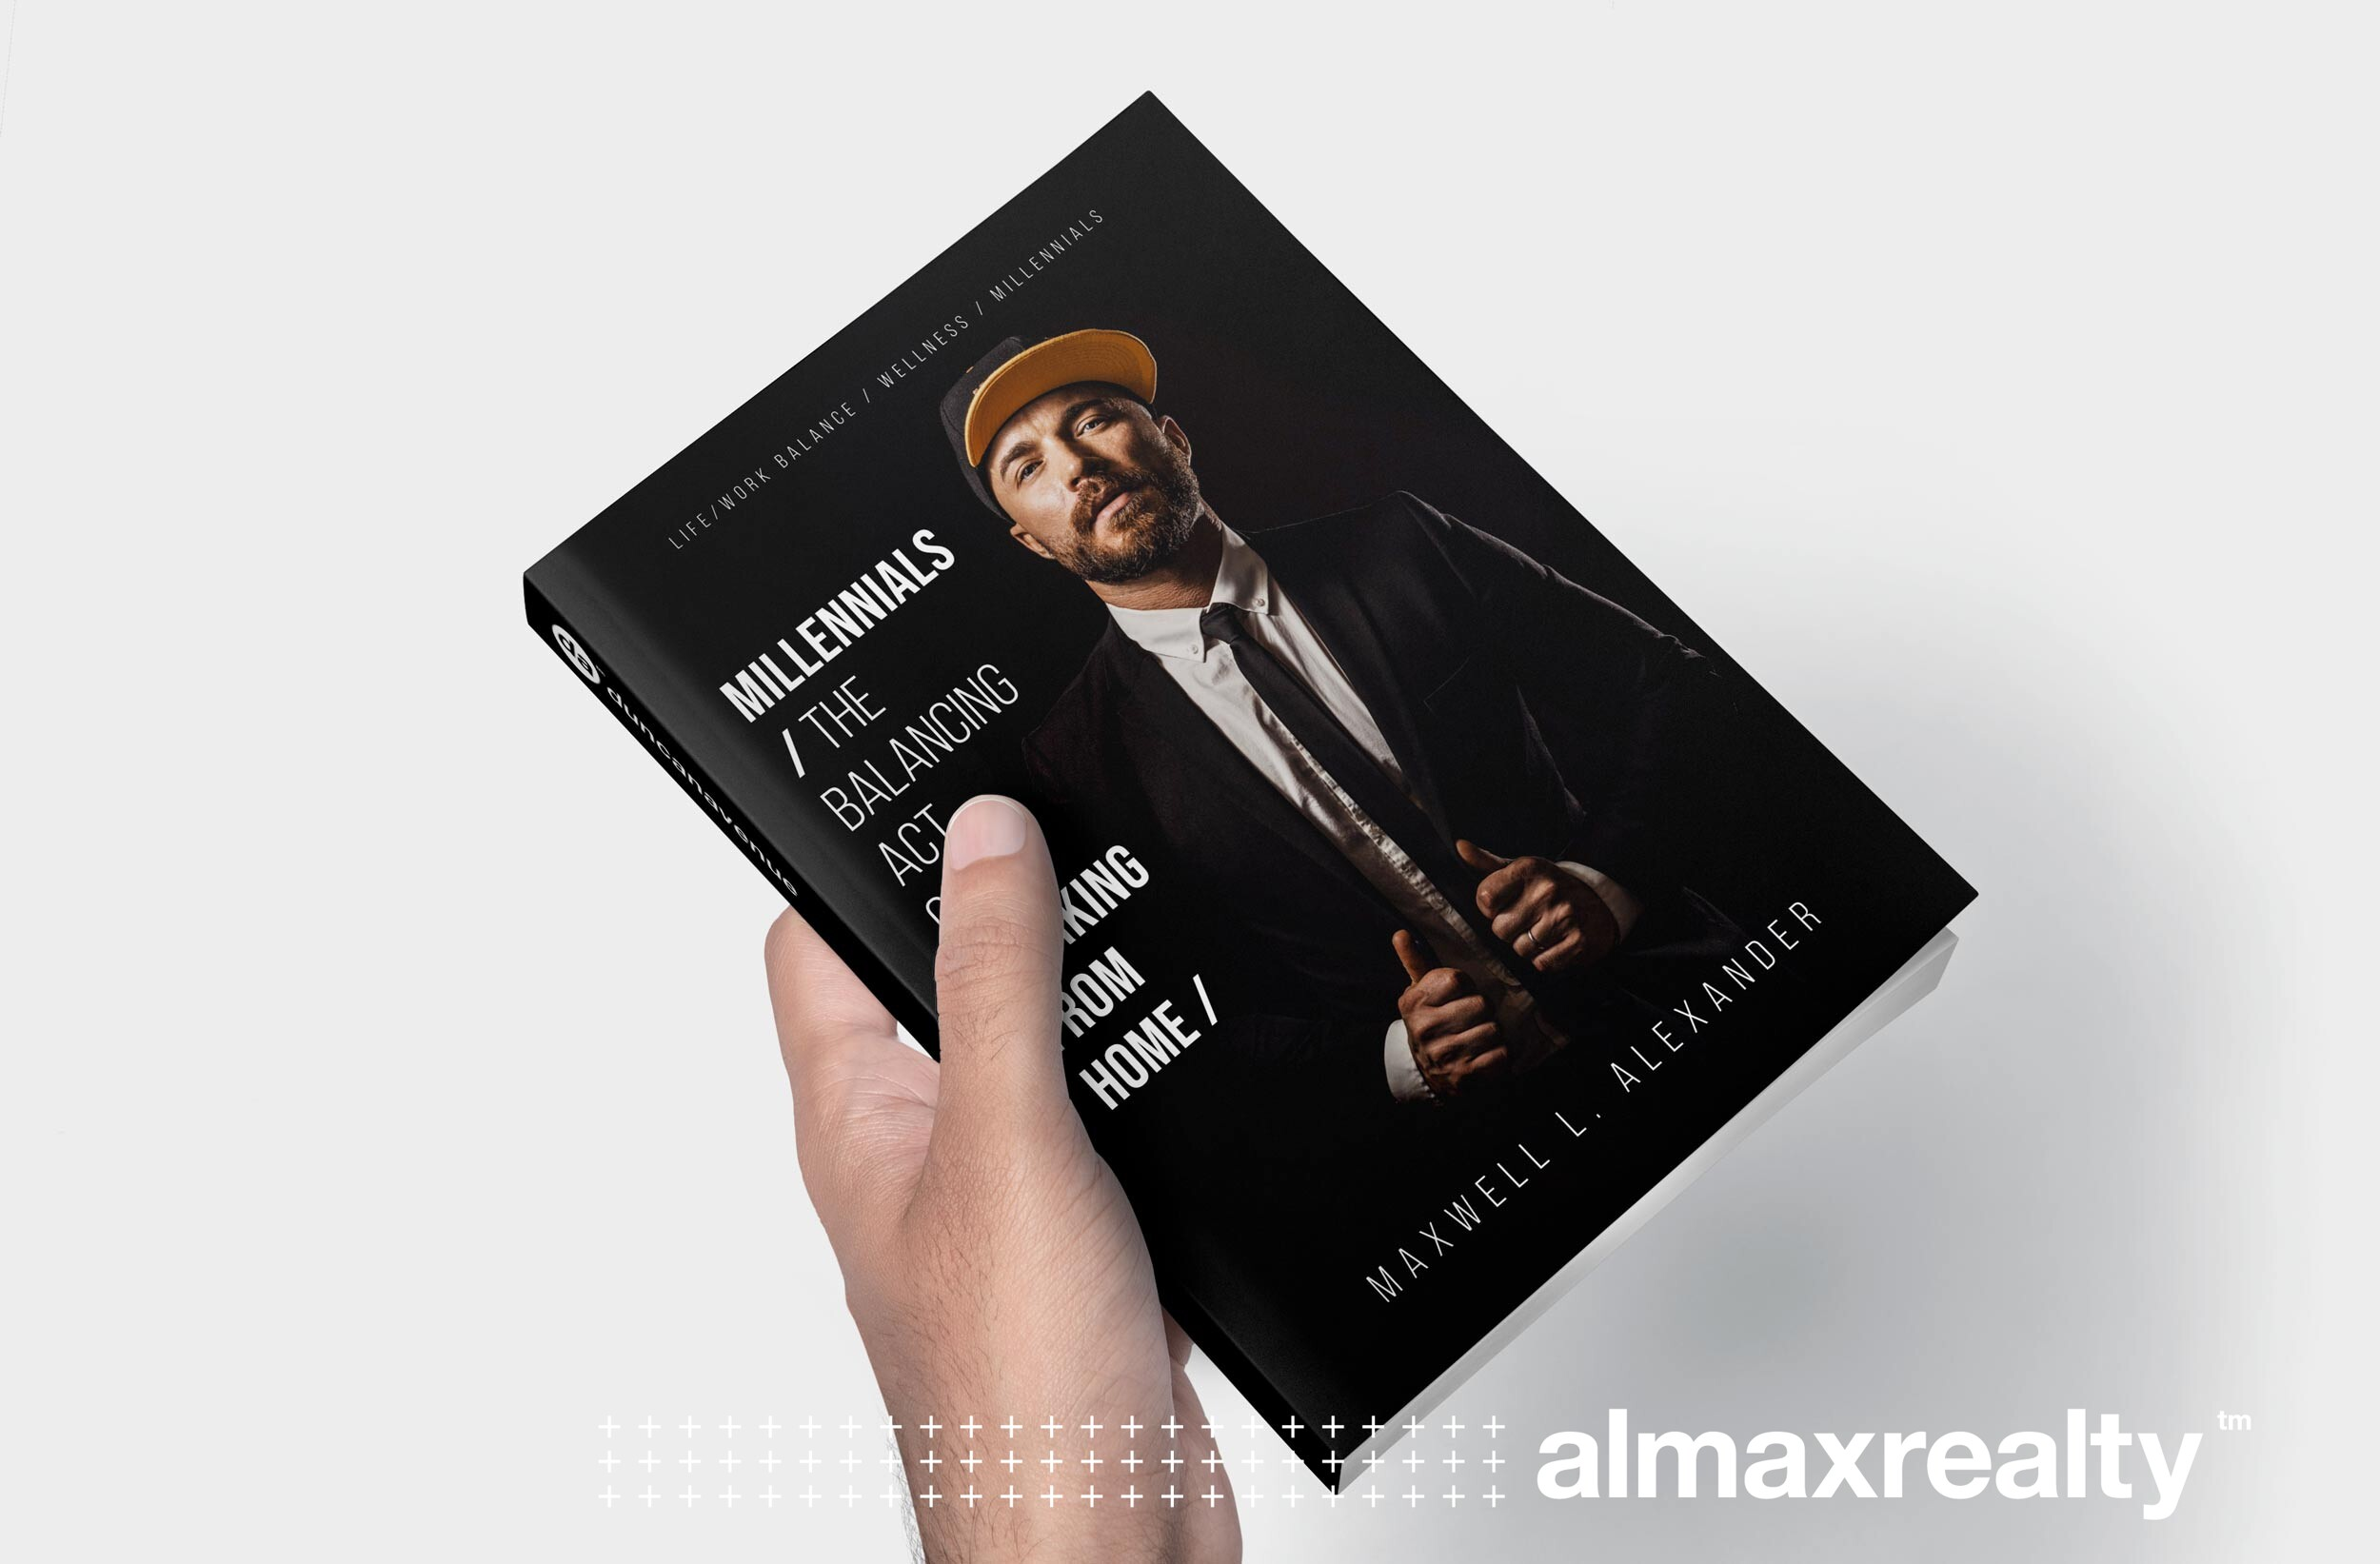 Millennials: The Balancing Act of Working from Home - New Book Announcement by Maxwell L. Alexander, CMO Almax Realty